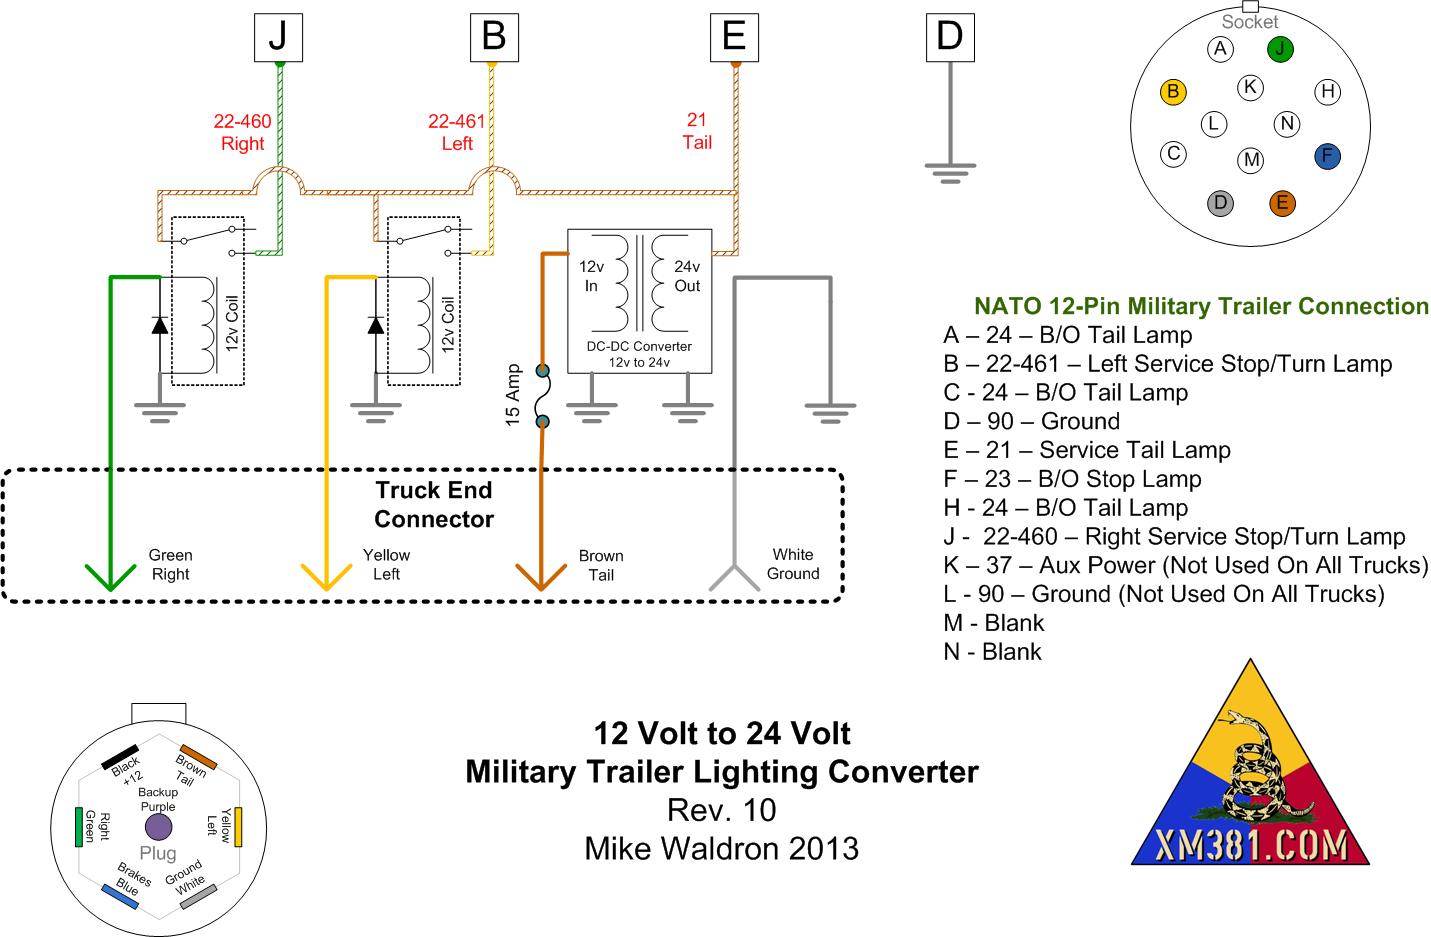 7 Pin Trailer Socket Wiring Diagram Library 24 Wire Harness Xm381 12 Volt Civllian Truck To Military Lighting